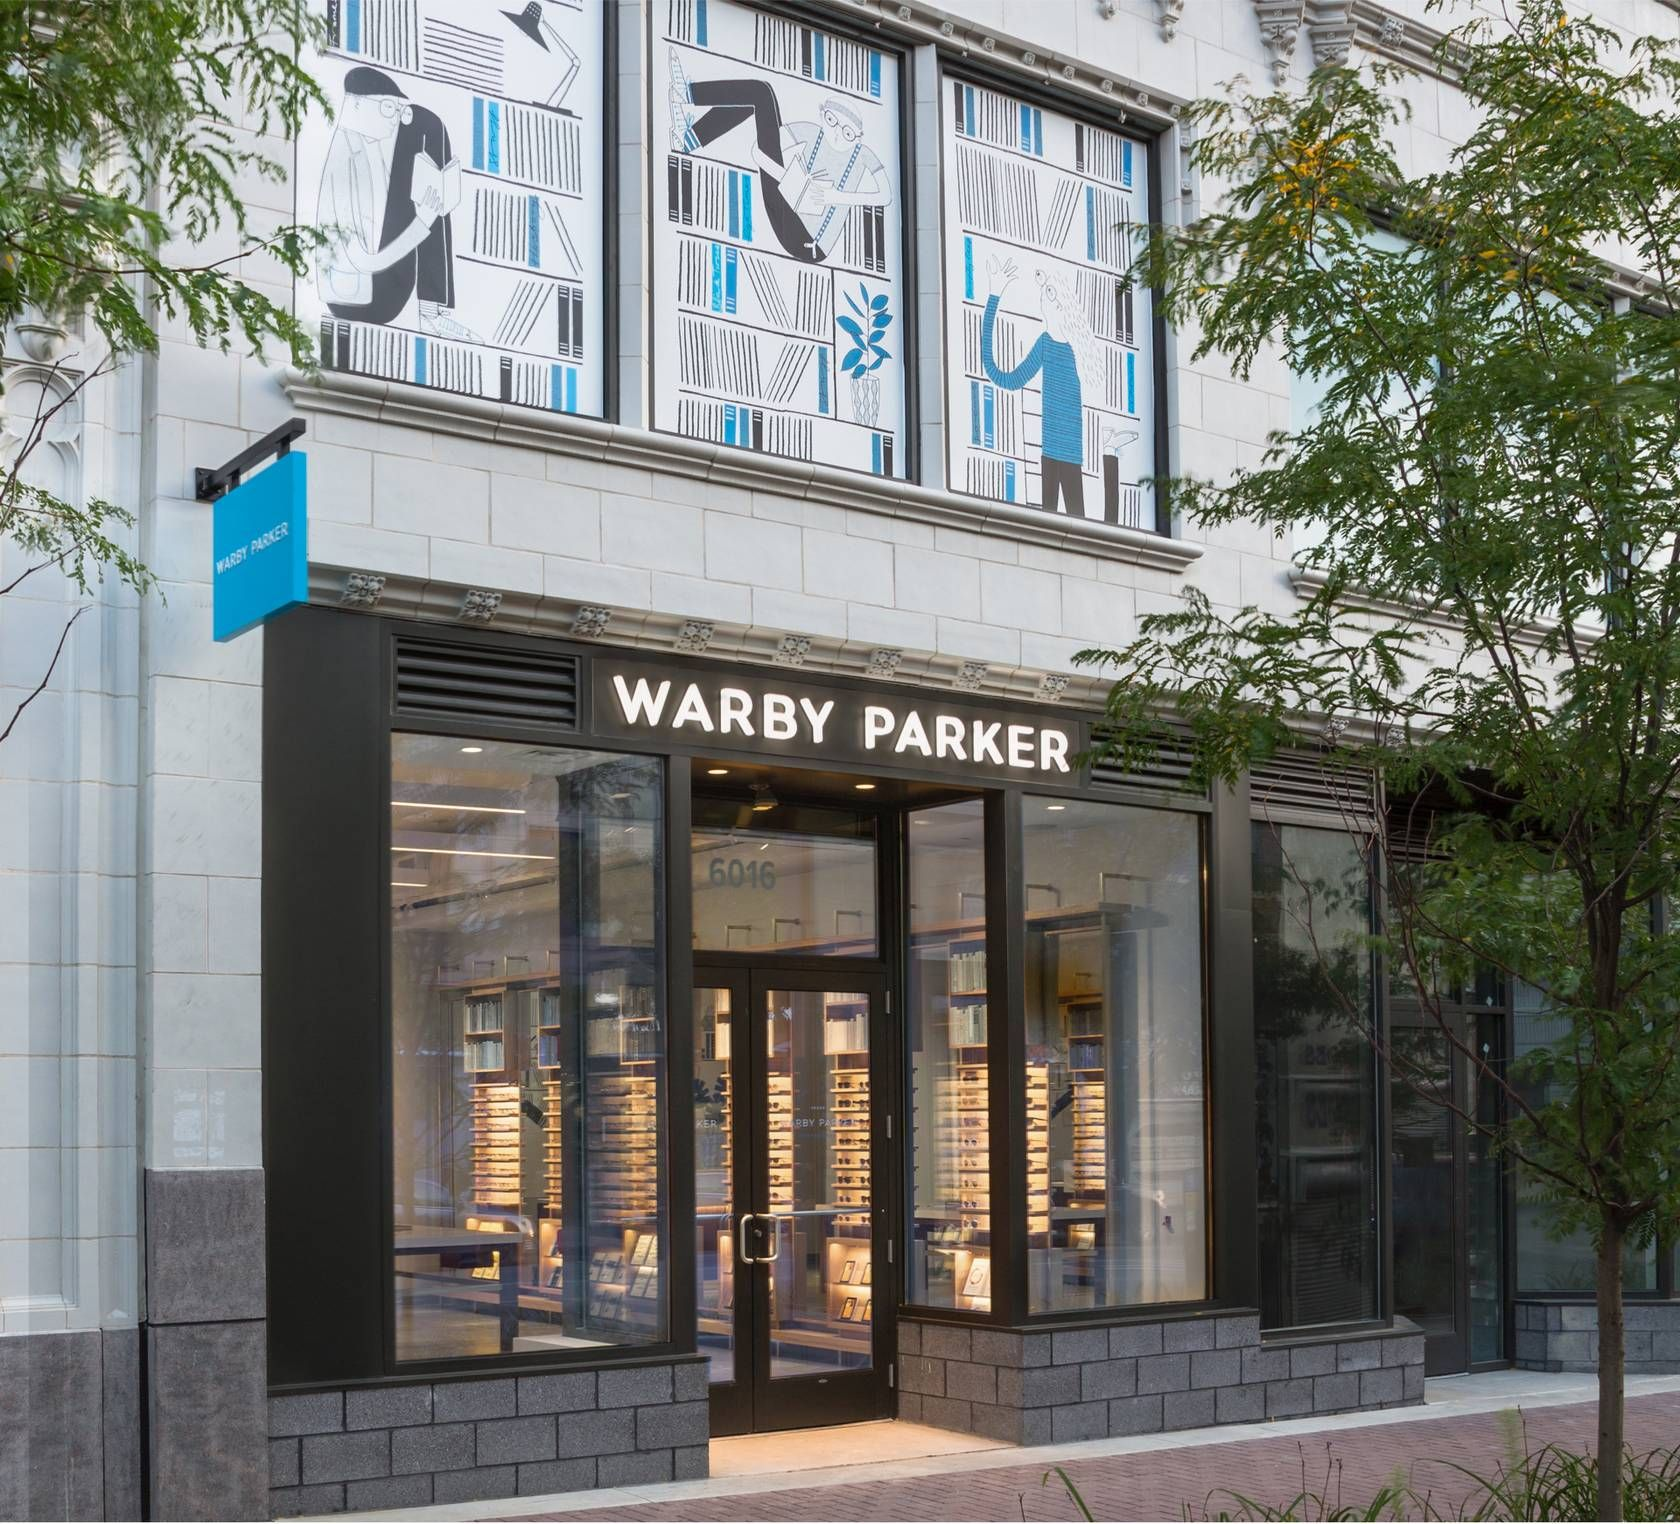 East liberty pittsburgh warby parker store with images